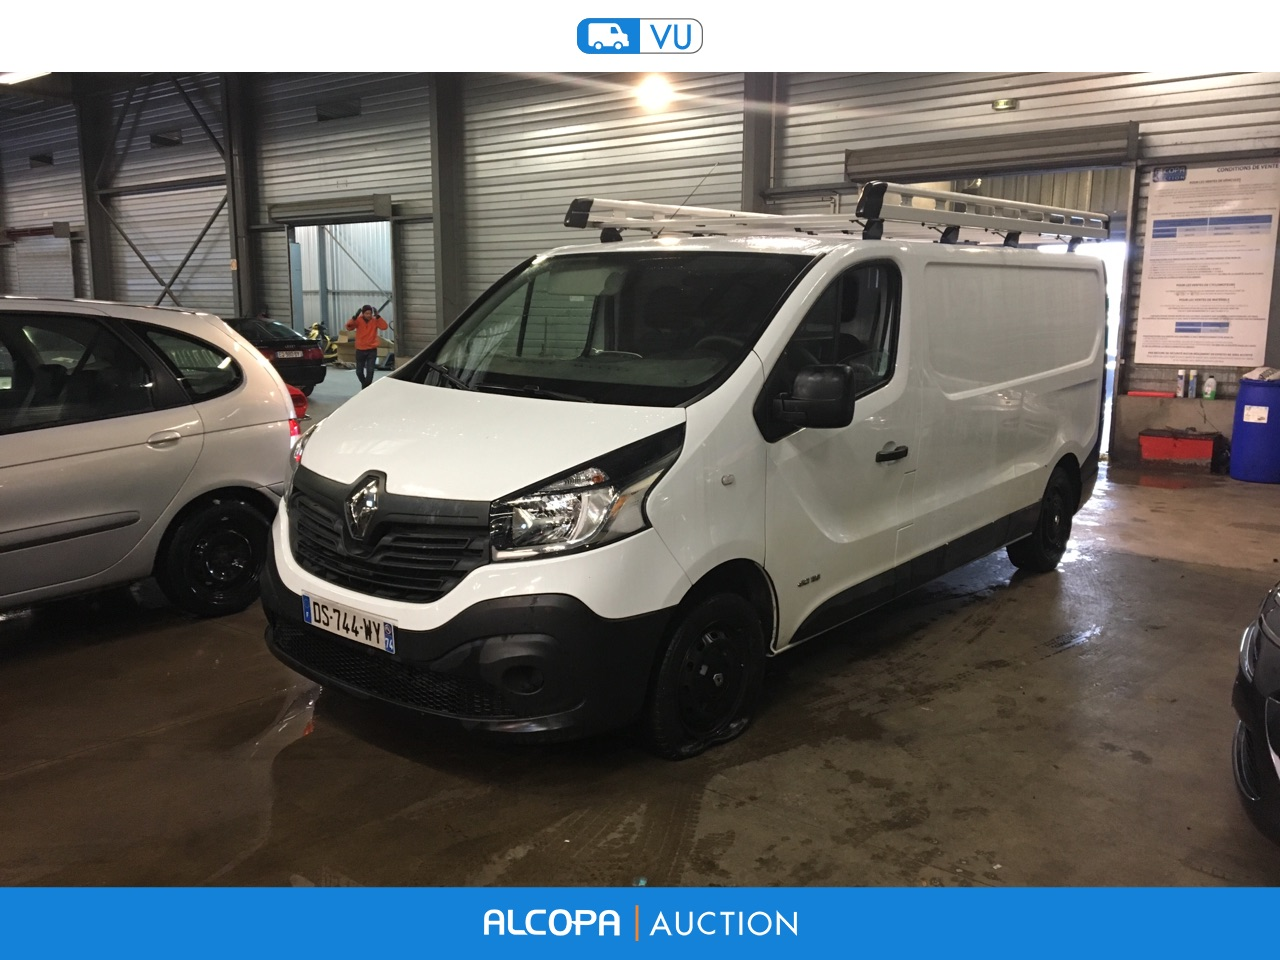 renault trafic trafic fg l2h1 1200 dci 115 confort nancy alcopa auction. Black Bedroom Furniture Sets. Home Design Ideas